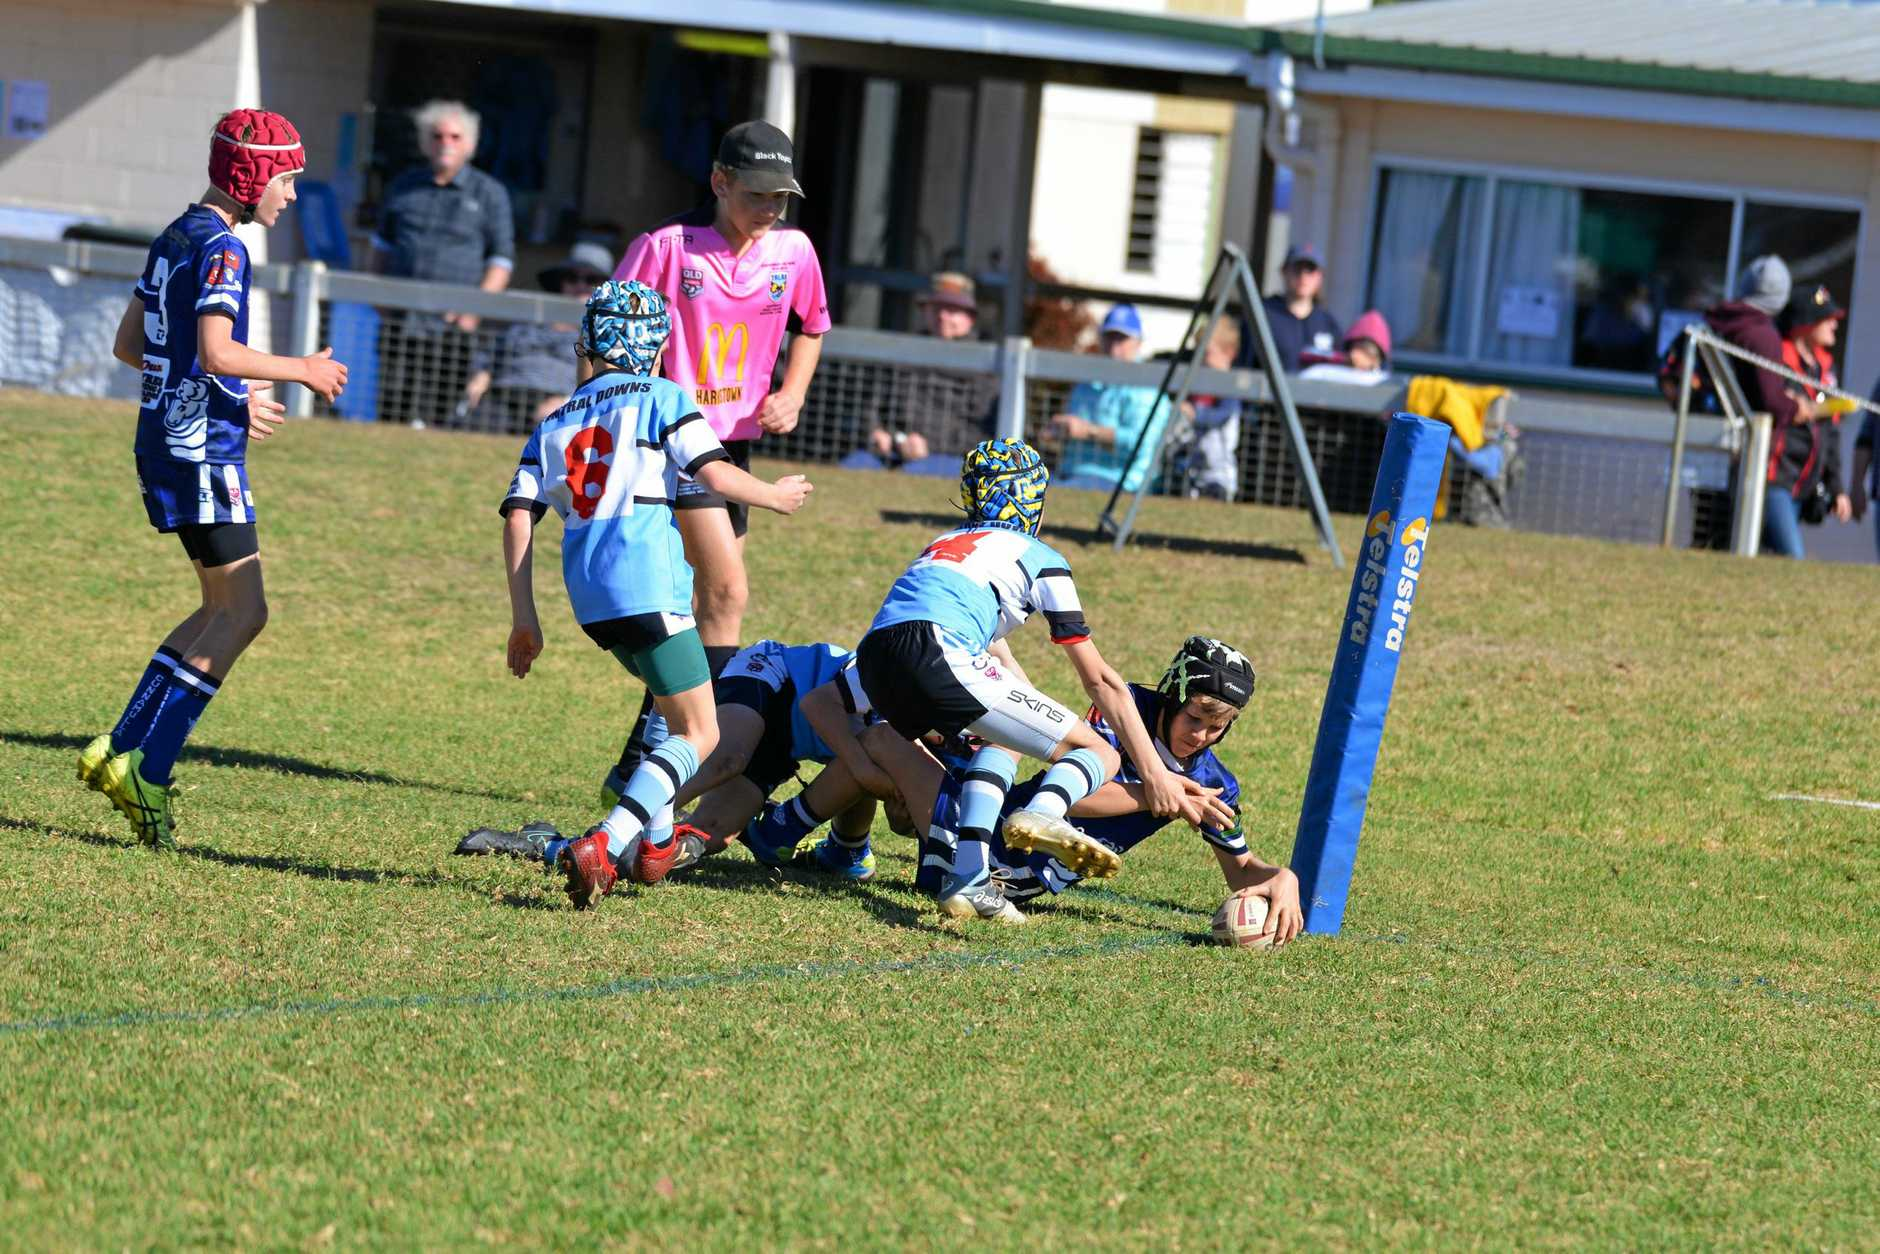 Alex Beresford dives to score a try for Cunnamulla in a win against Central Downs in the zone 5 under-43kg rugby league carnival at Platz Oval, Clifton. The carnival goes to Friday.